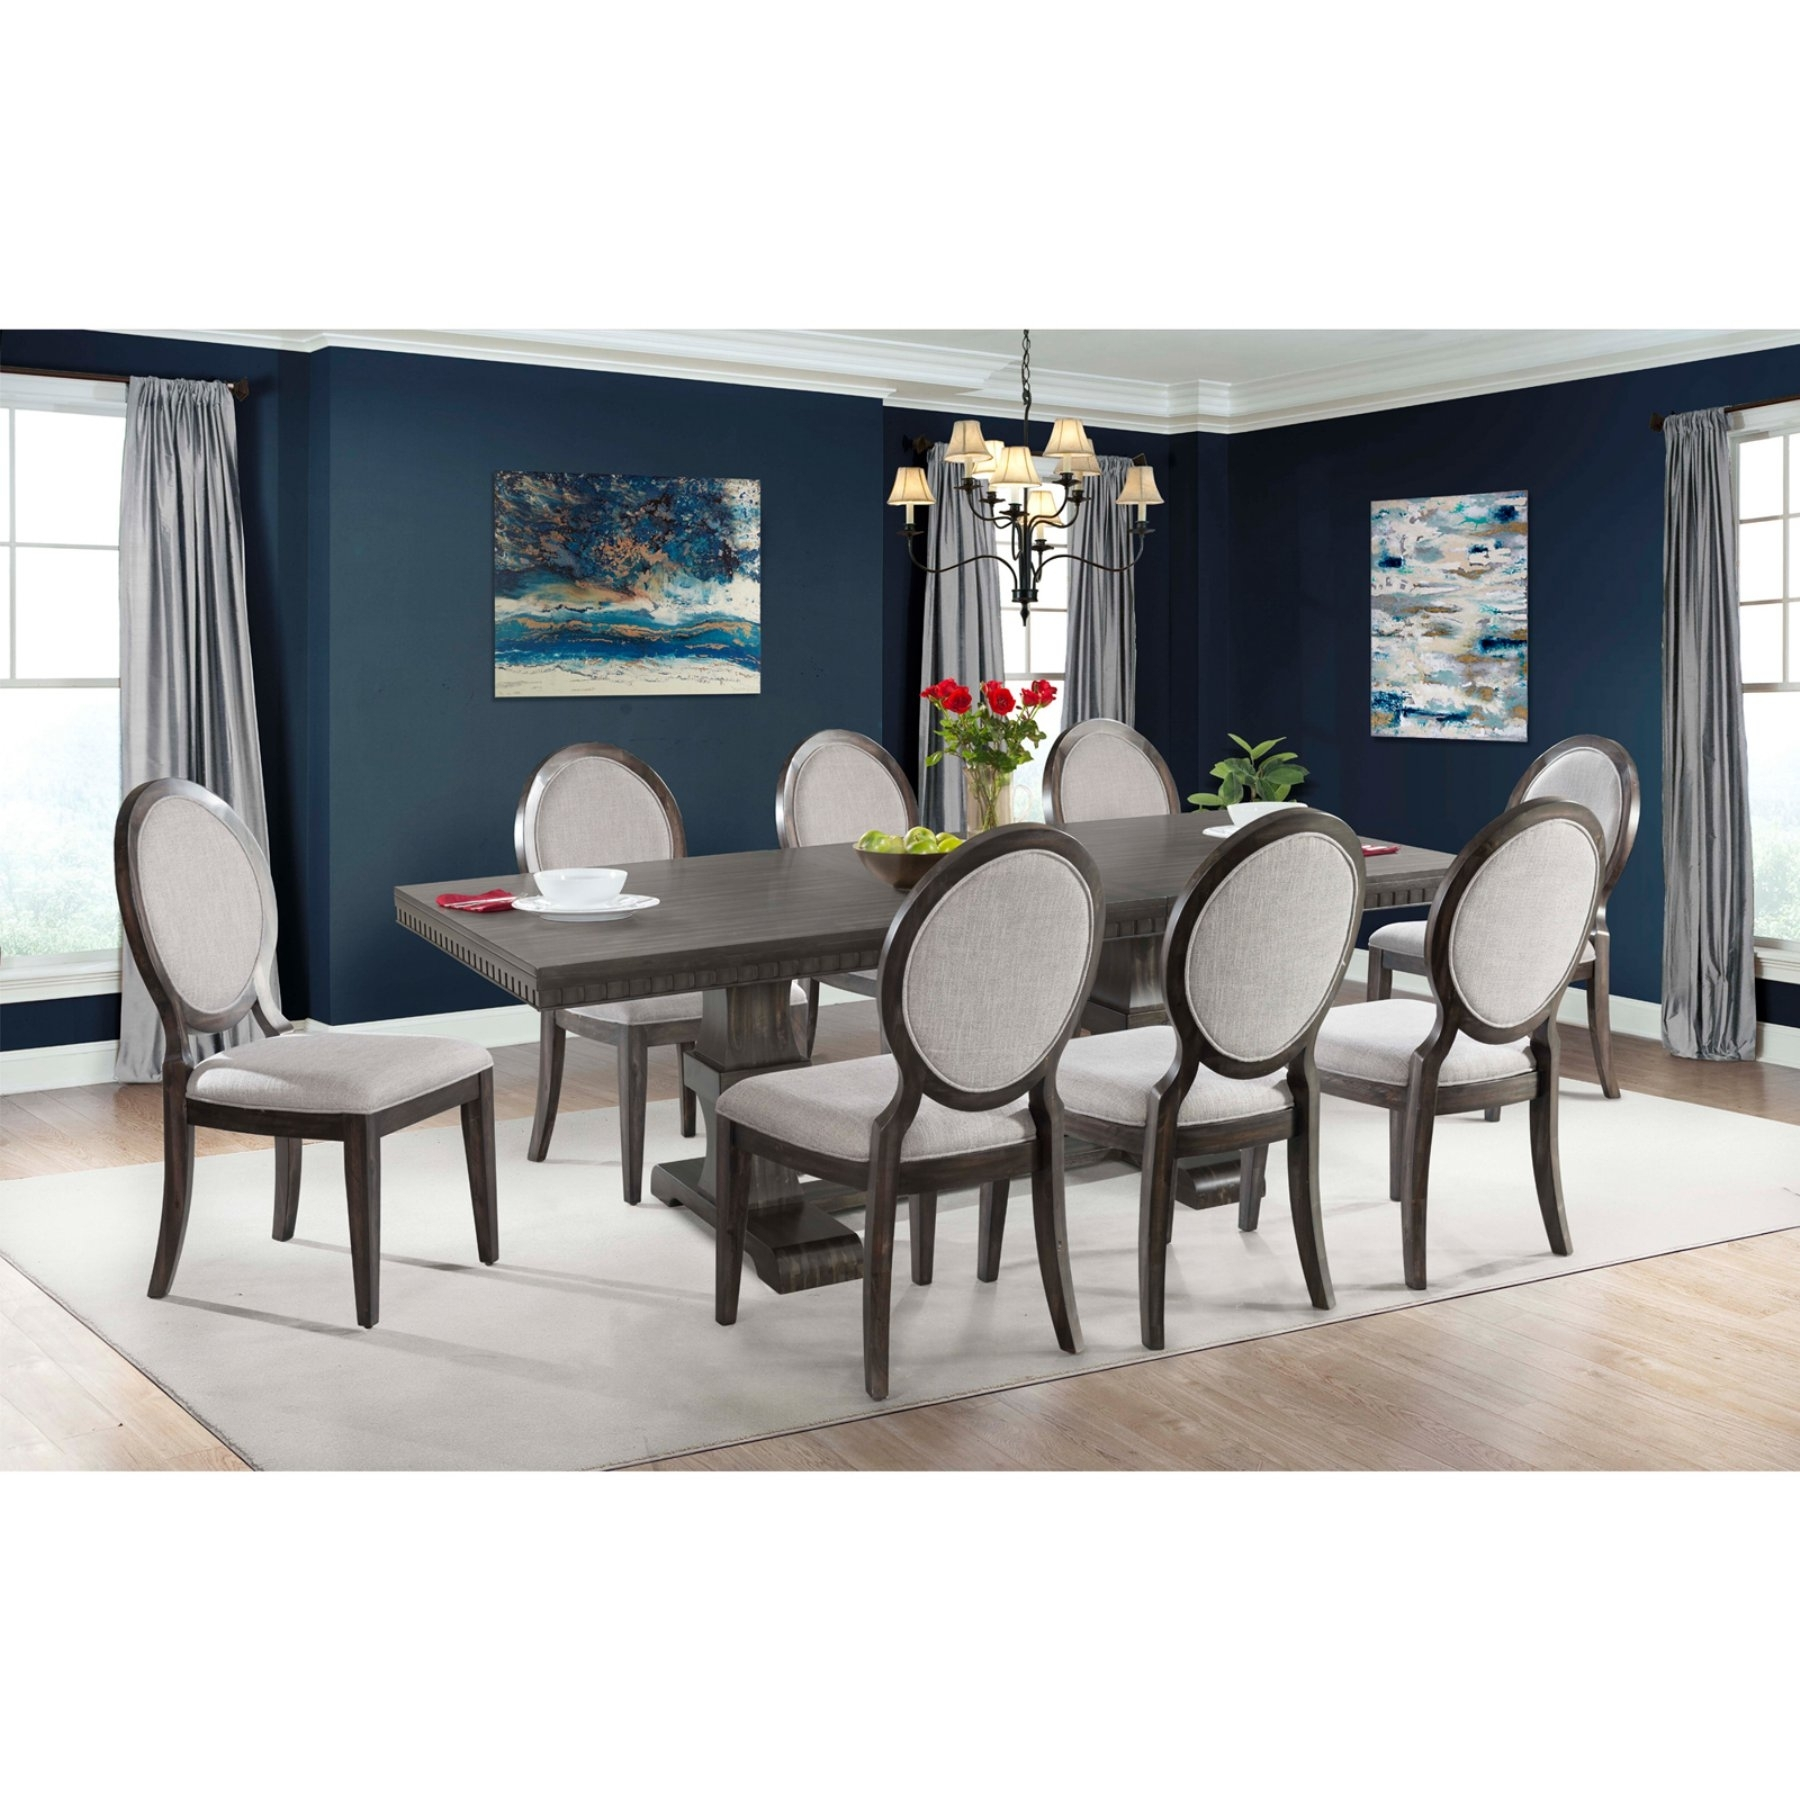 Picket House Furnishings Steele 9 Piece Extension Dining Table Set Inside Newest Candice Ii 7 Piece Extension Rectangular Dining Sets With Uph Side Chairs (Image 15 of 20)